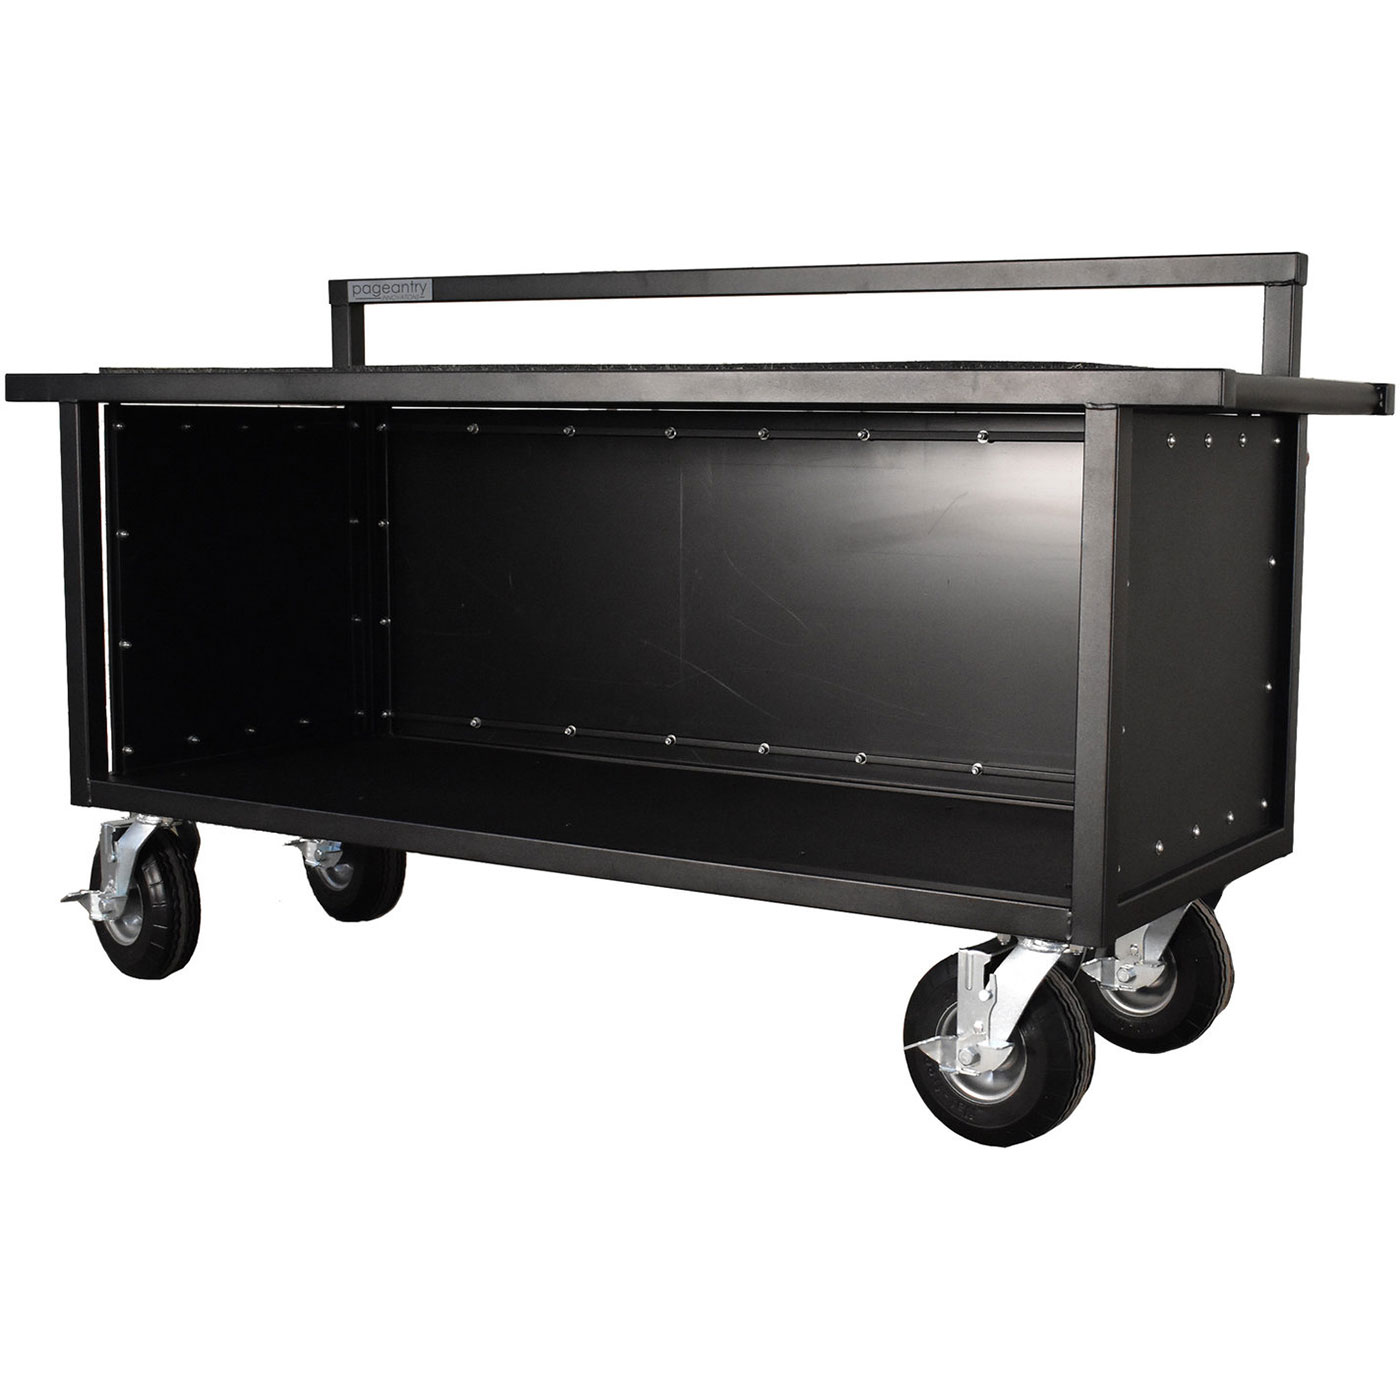 "Pageantry Innovations Partially Enclosed Synthesizer Cart (39"" H x 68"" W x 24"" D)"